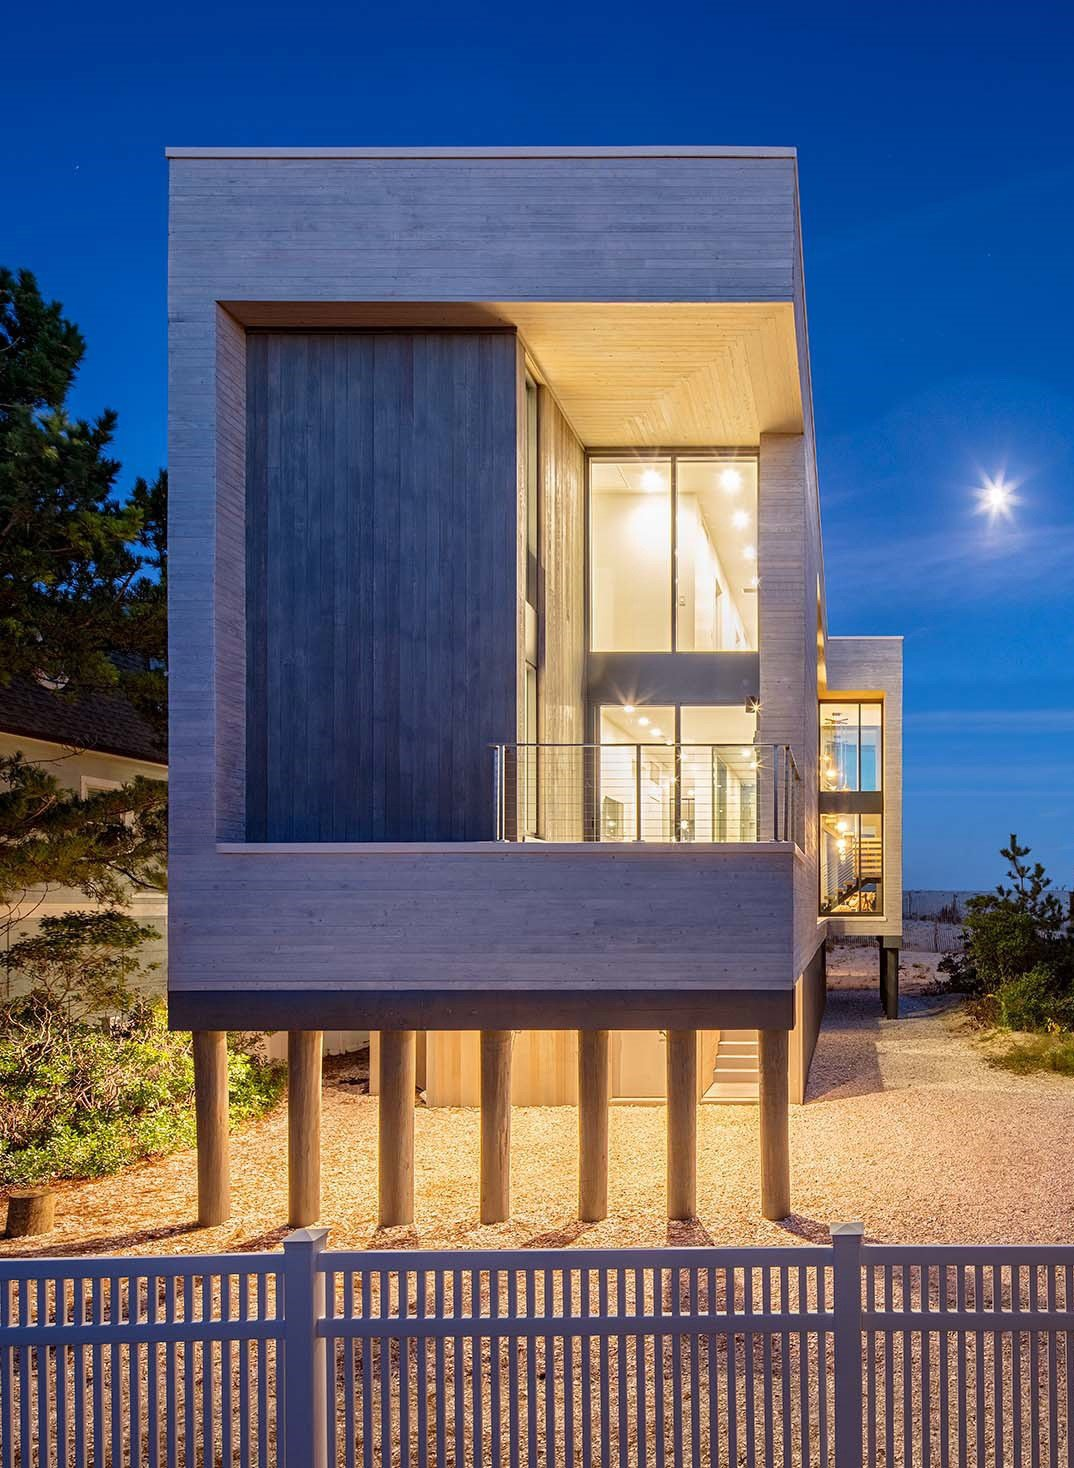 Beach Haven Residence, Exterior at Twilight.   Beach Haven Residence by Specht Architects